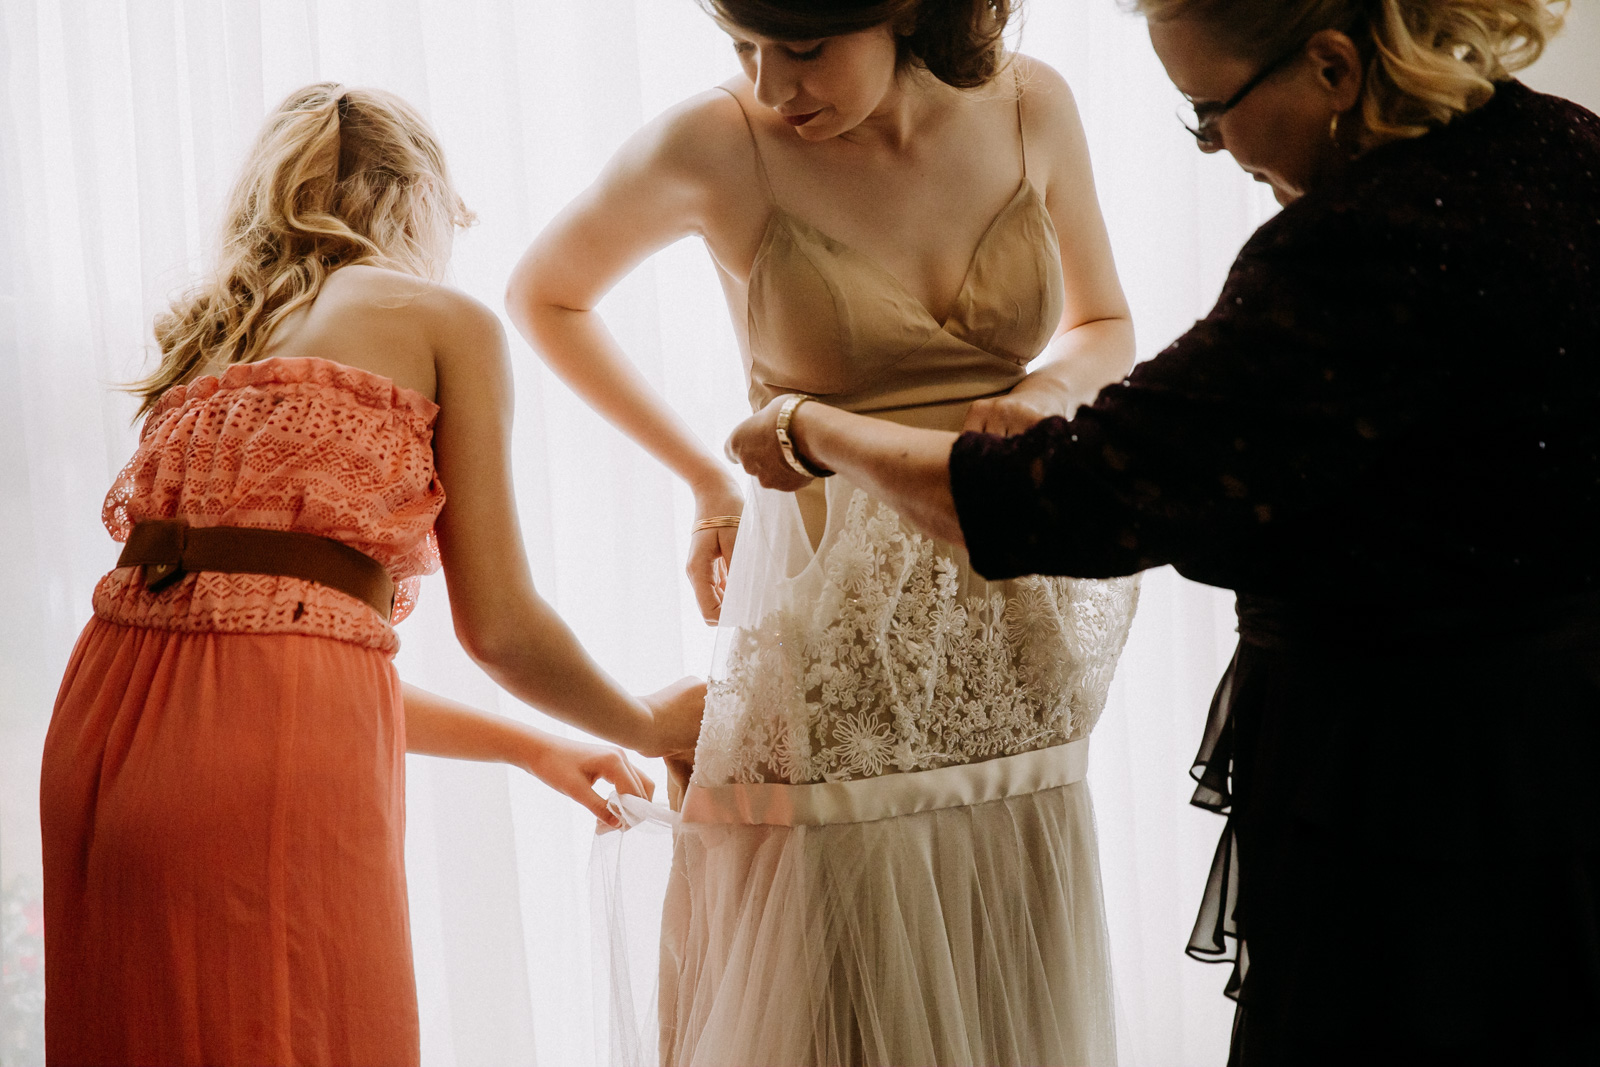 Bridesmaids and mother-of-the-bride helping the bride get dressed